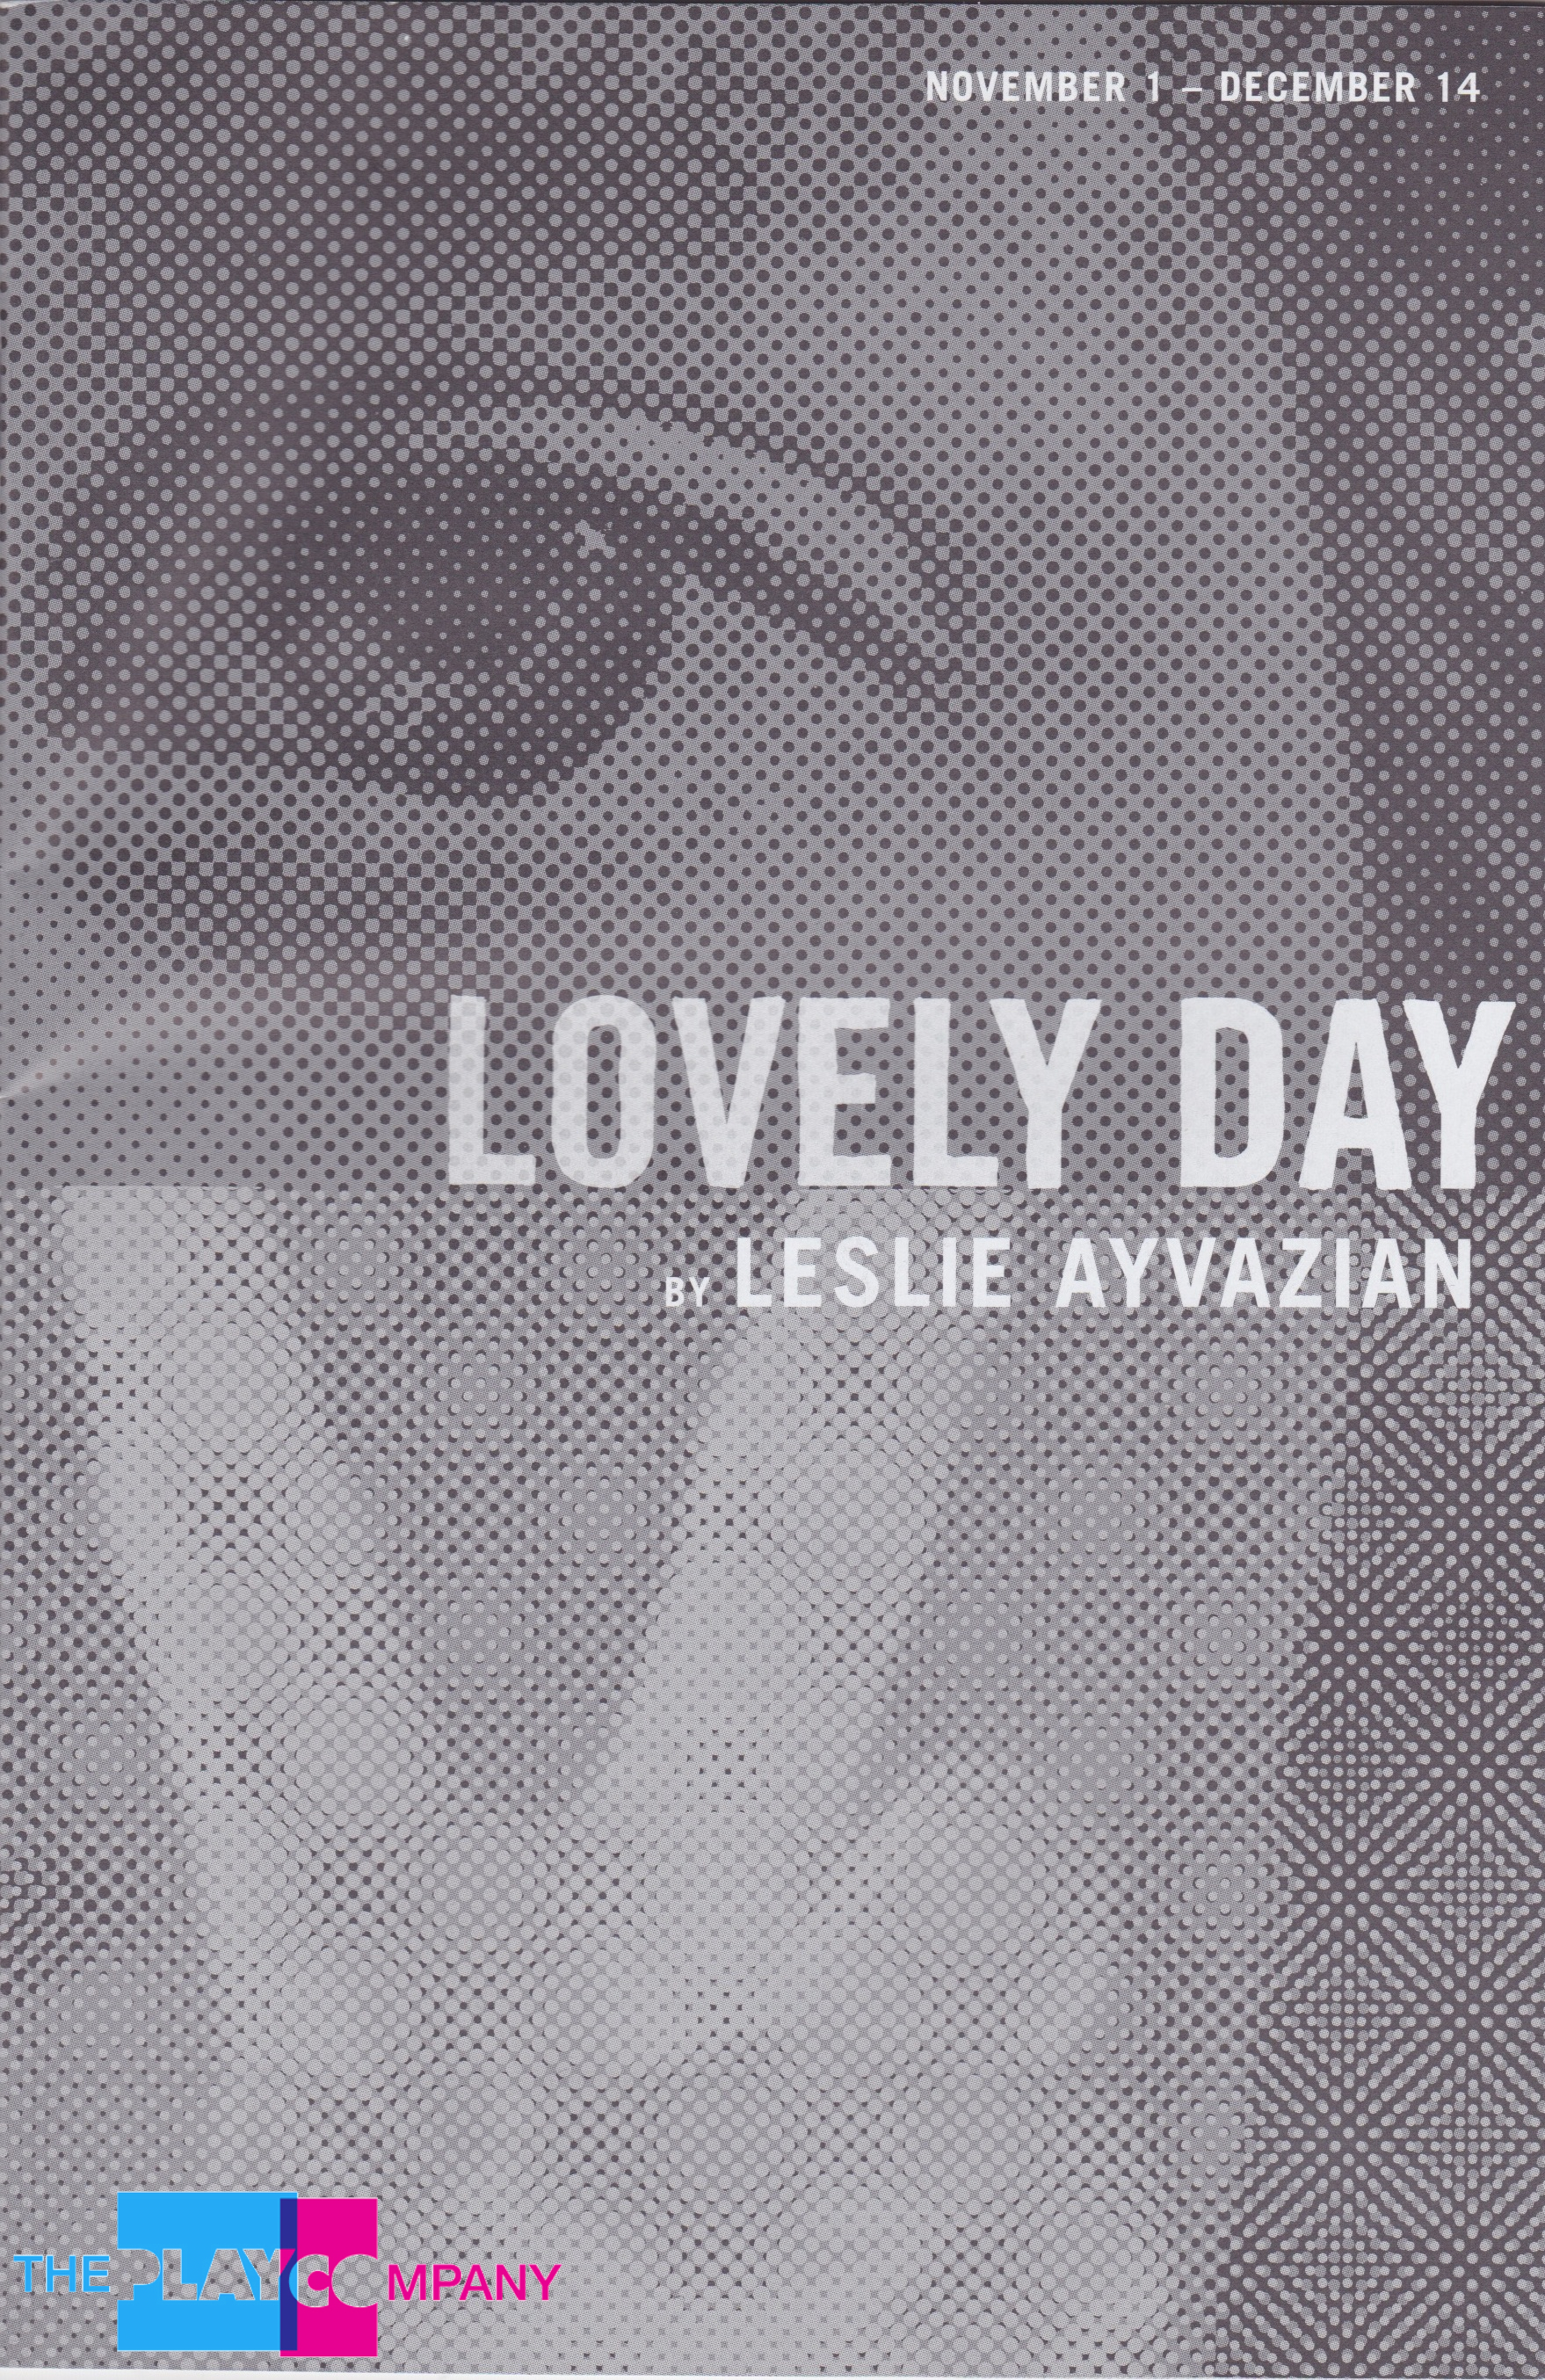 lovely day 1 w logo.jpg